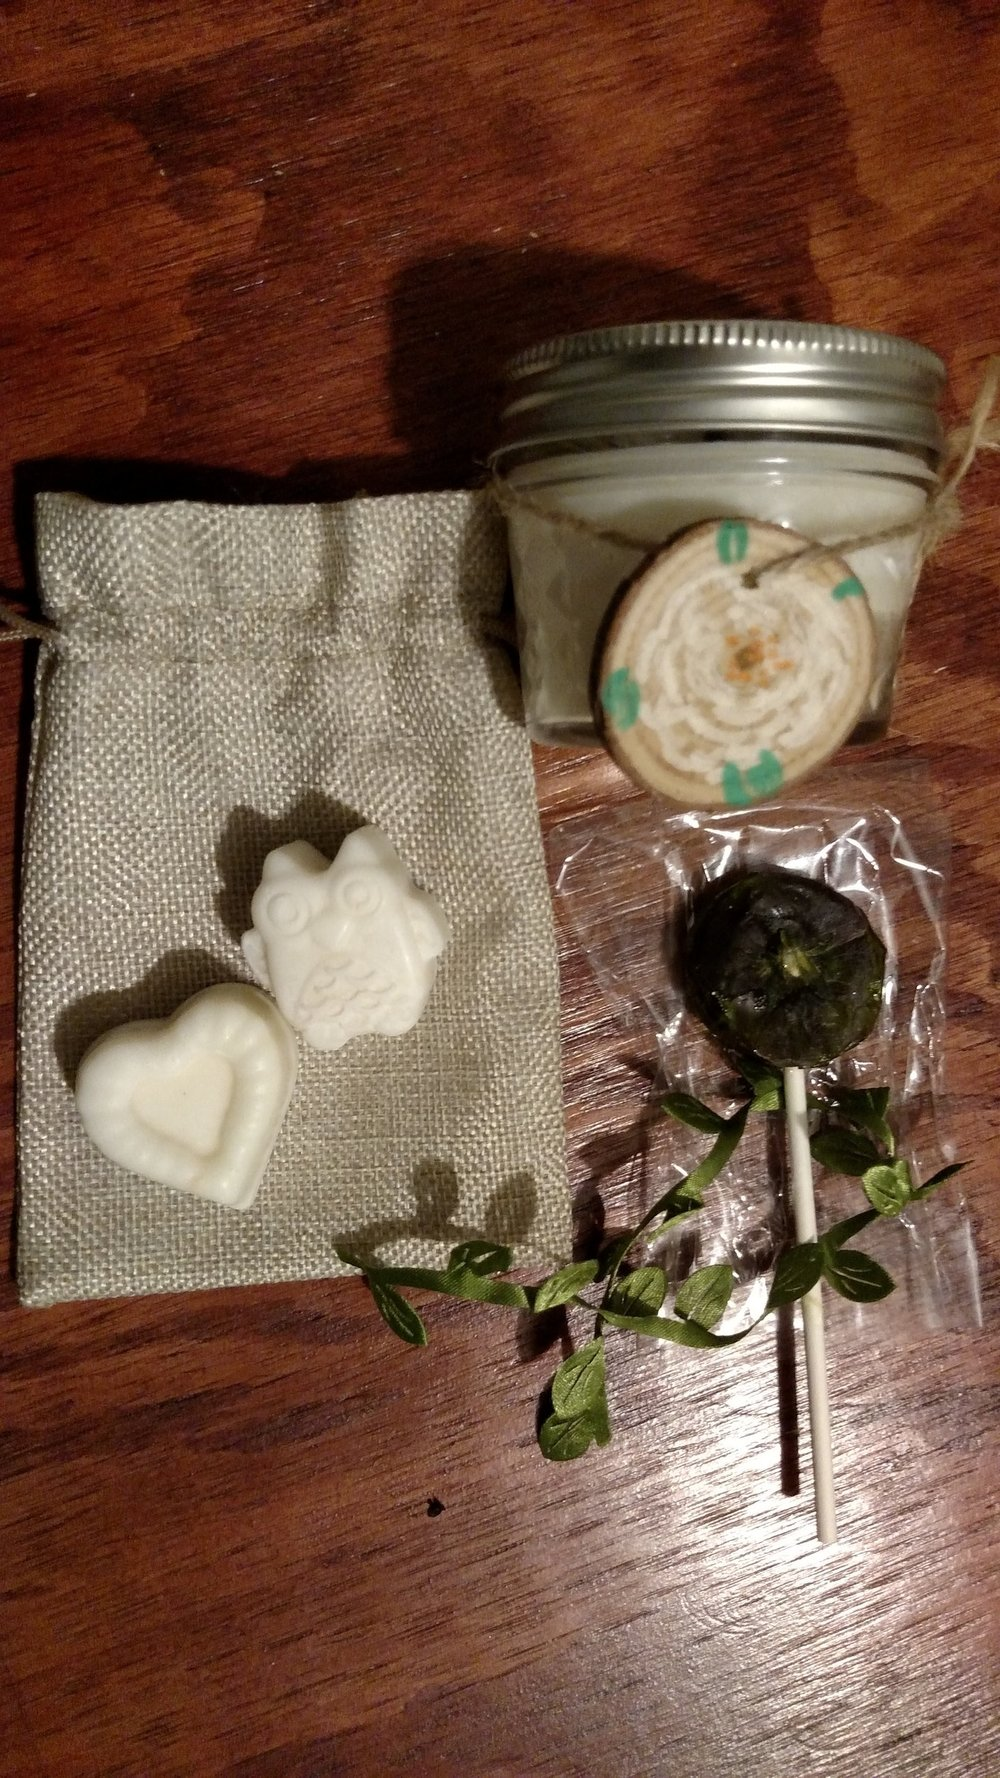 Me and Eric were not the only ones busy creating before the wedding. Our moms were also busy making handmade gardenia (our wedding flower) candles and wax melts, fairy lollipops and jam (not pictured).